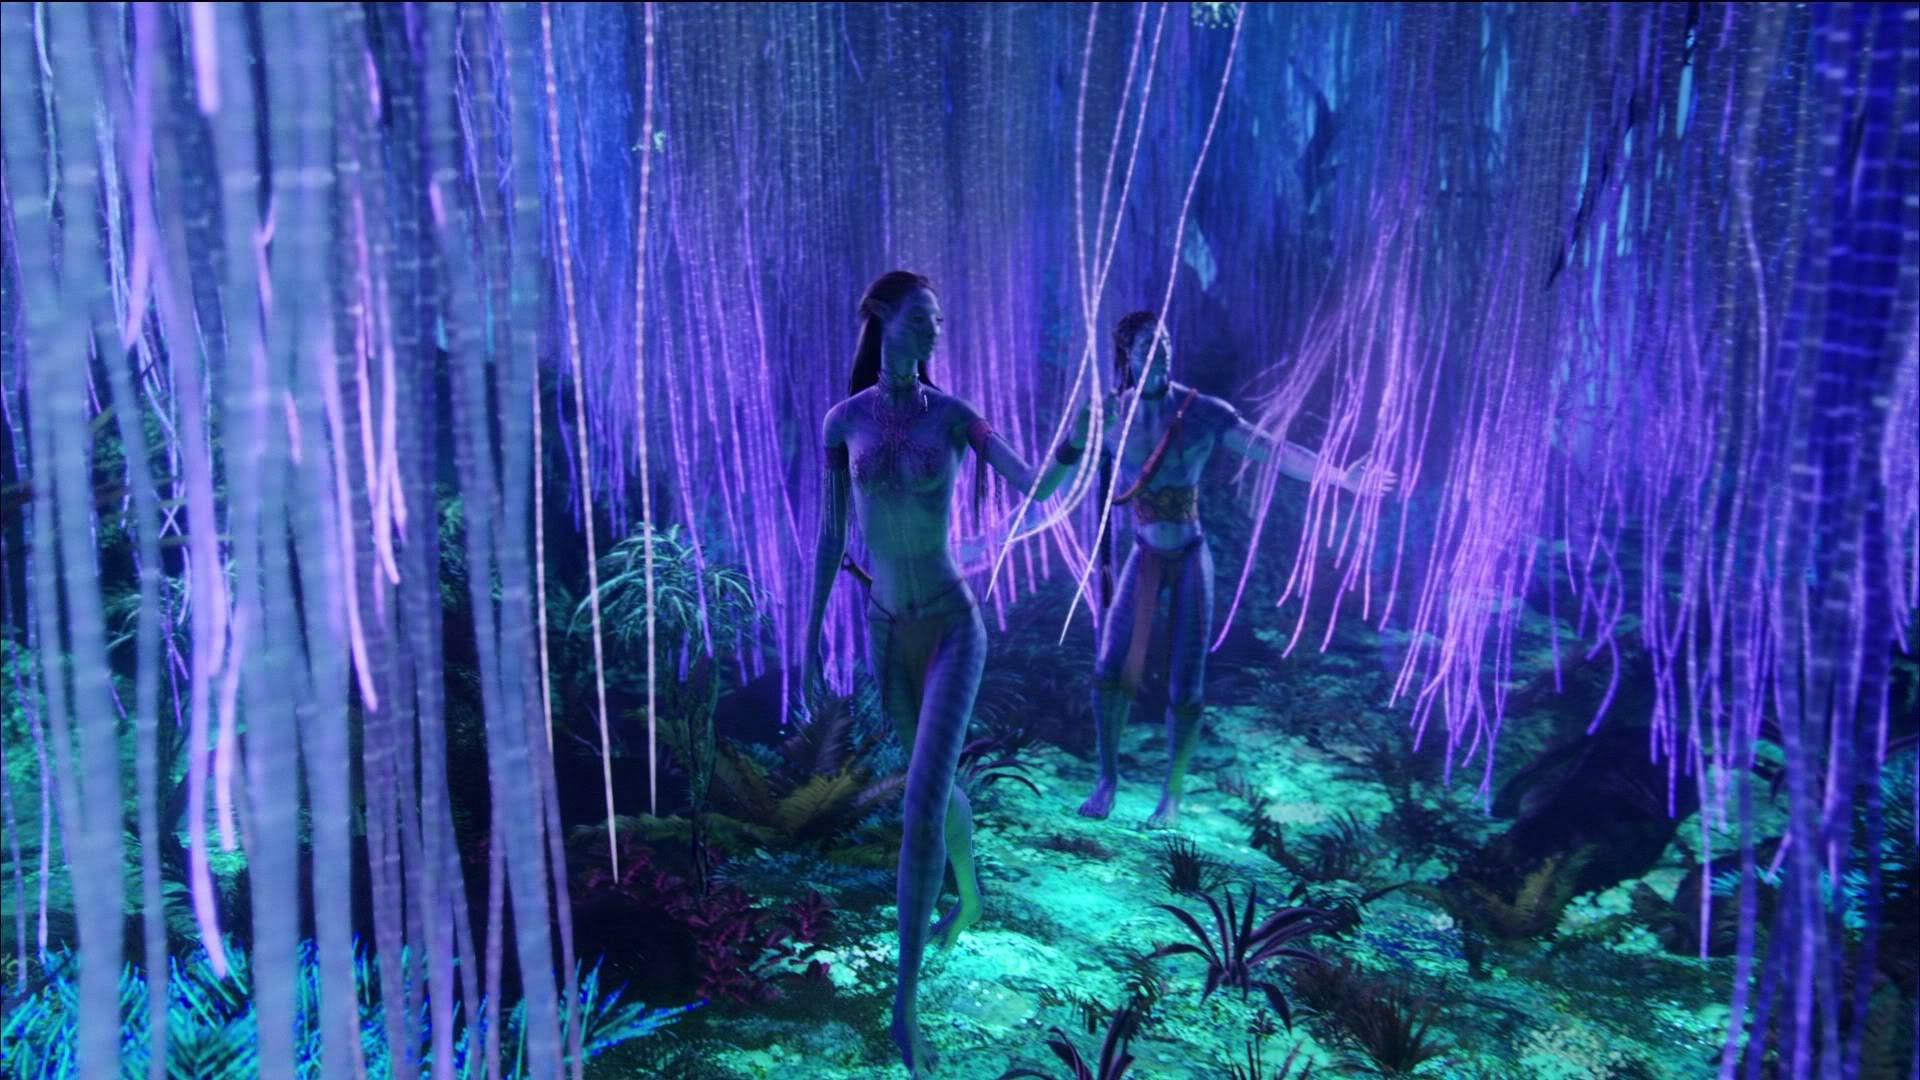 ffebca3dcfaeabdc-avatar-theme-avatar-movie-wallpaper-wp3405496